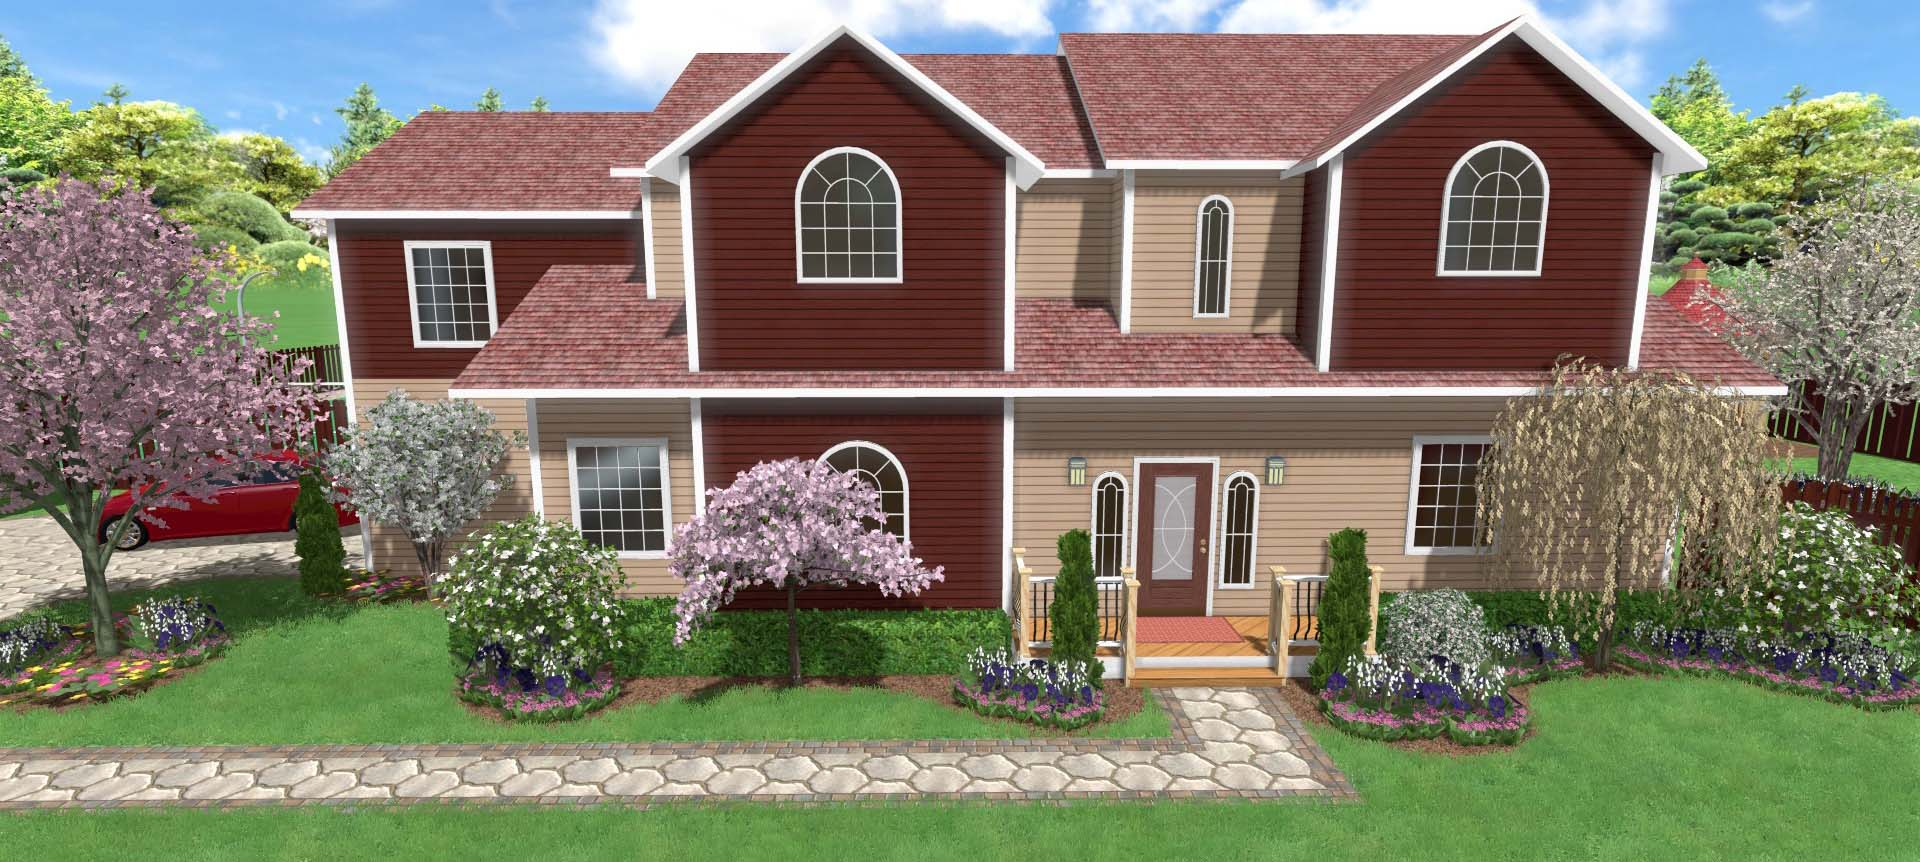 Home landscaping software for How to design landscaping